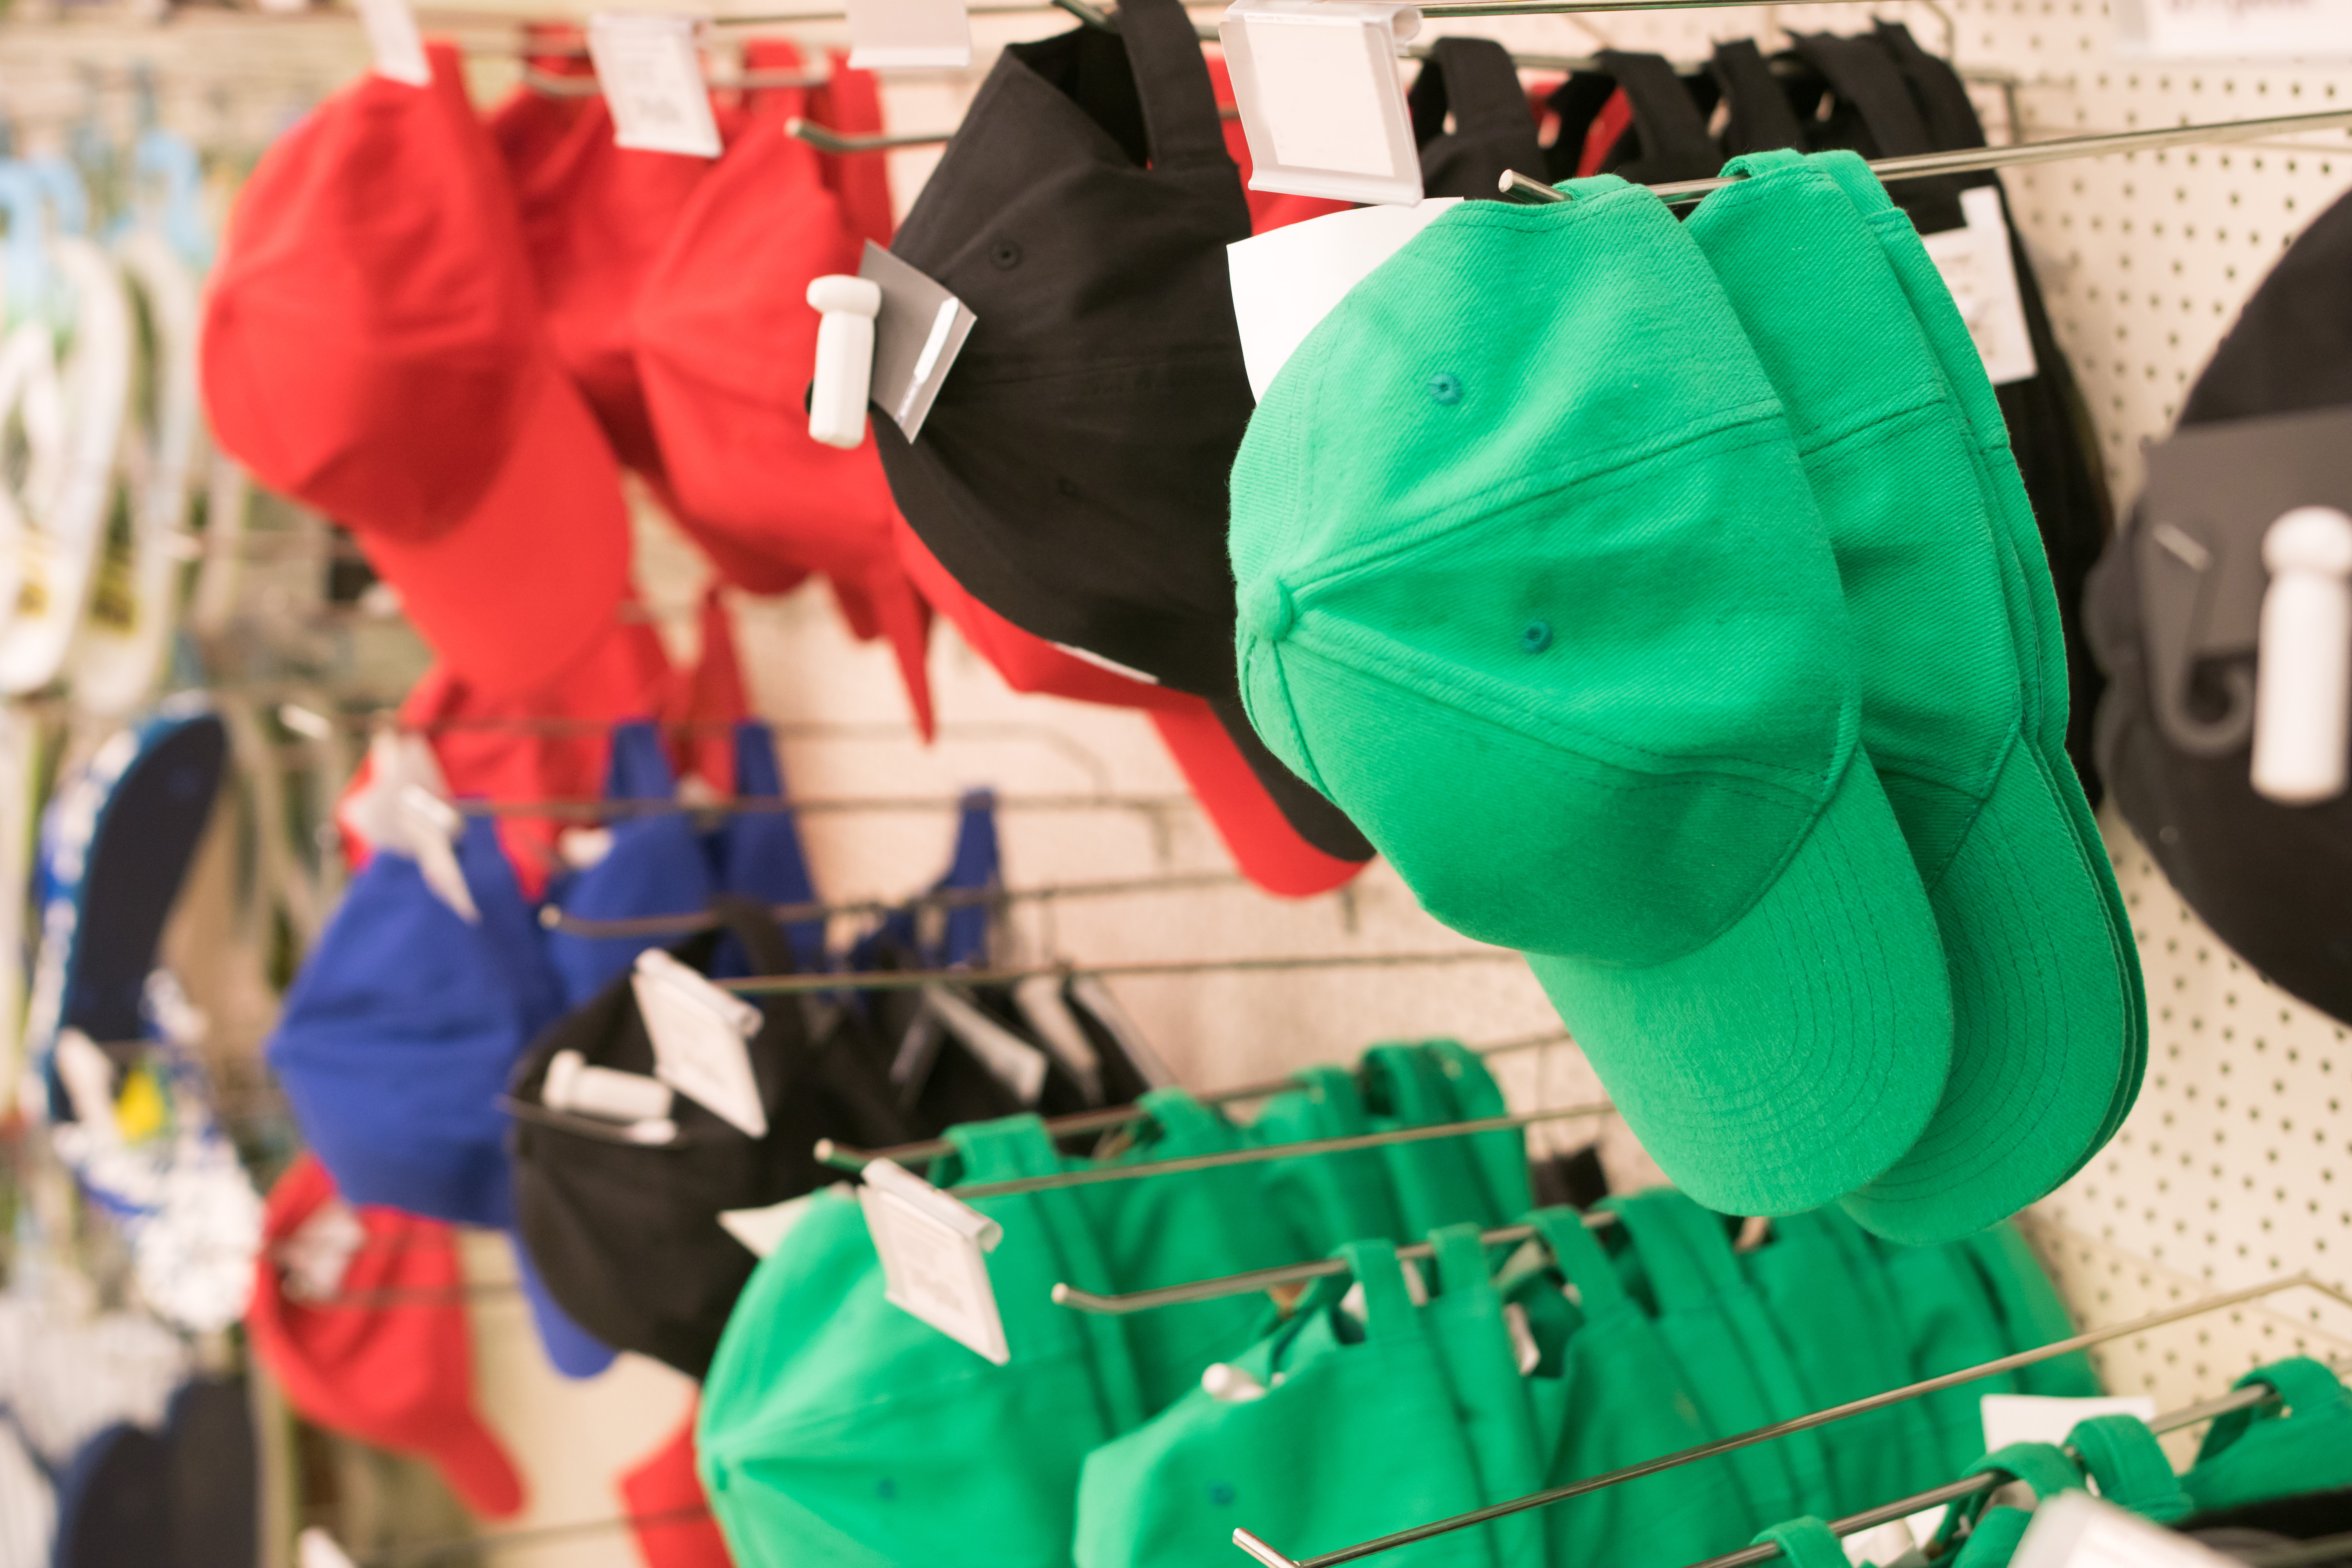 Green, red, and black baseball caps hanging on hooks against a white wall.